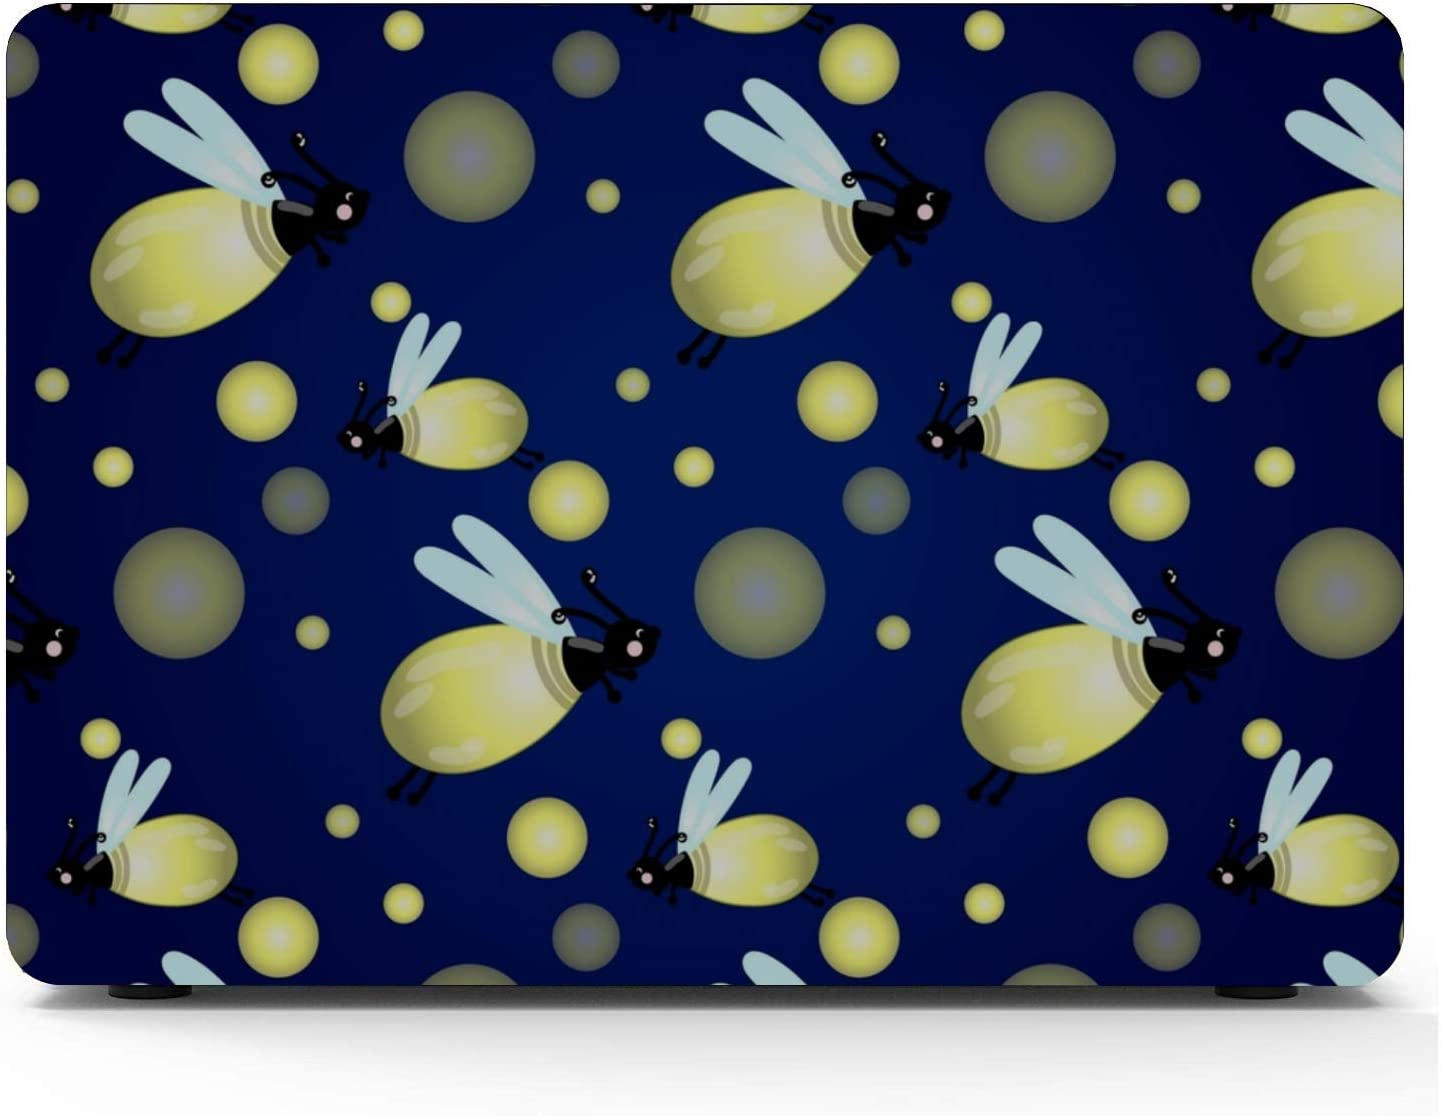 Cover for MacBook Air Shining Colorful Romantic Art Gift Plastic Hard Shell Compatible Mac Air 11 Pro 13 15 MacBook Protector Protection for MacBook 2016-2019 Version